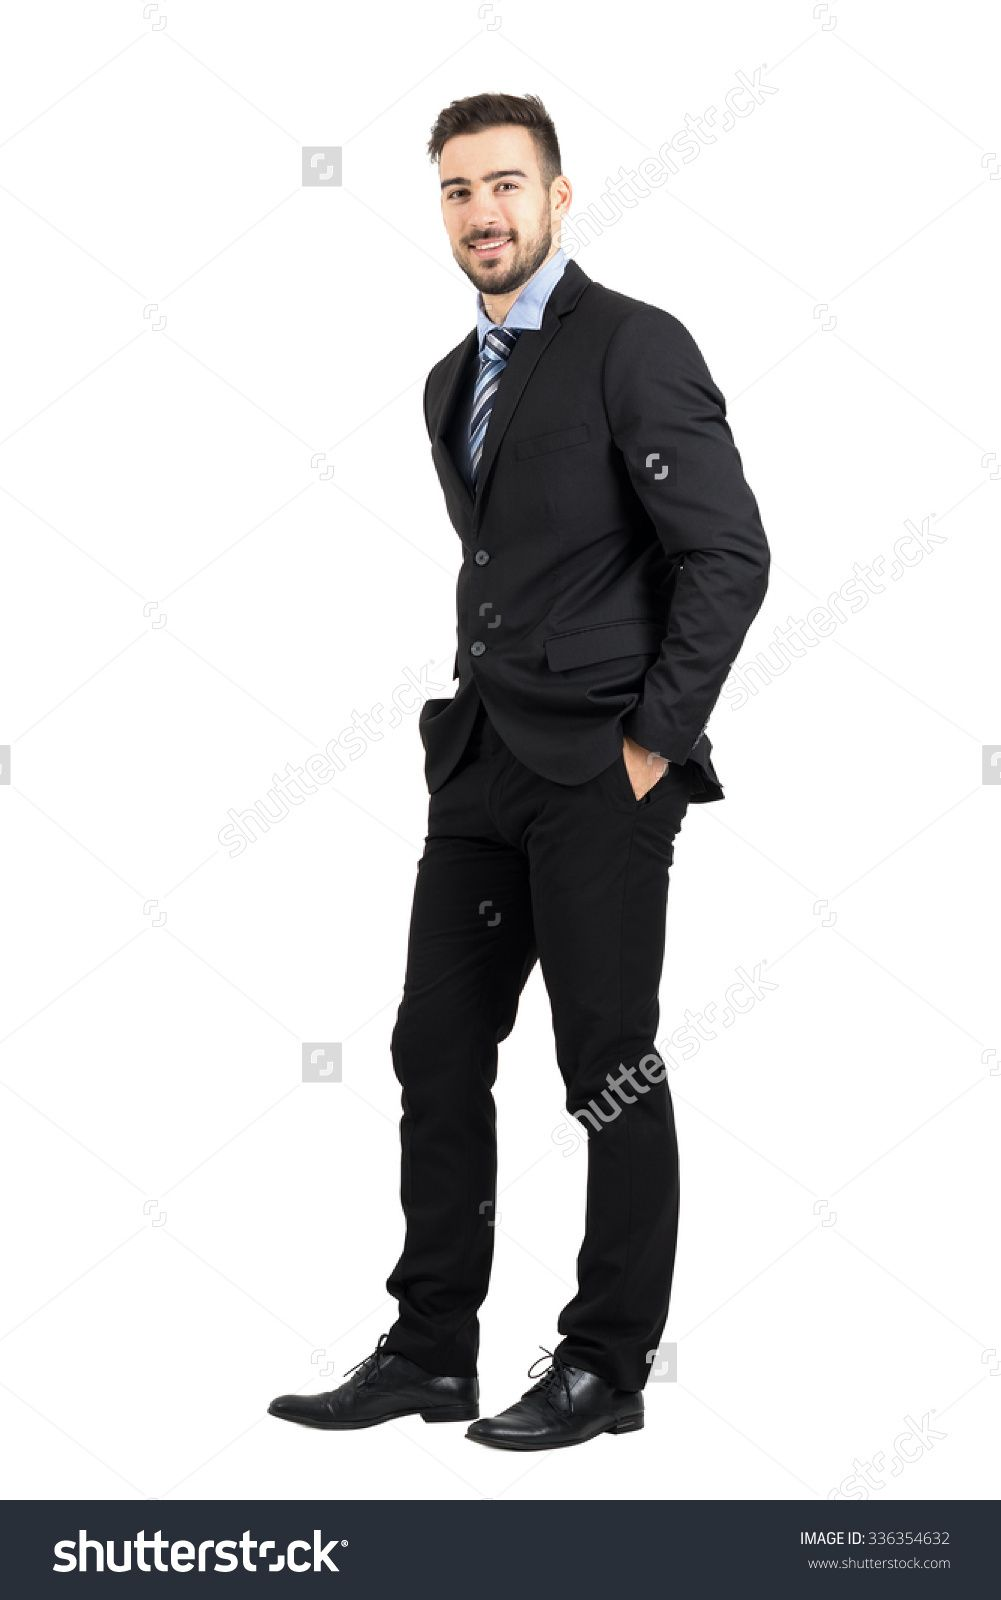 75ae4f2ff12 Confident happy business man with hands in pocket side view. Full body  length portrait isolated over white studio background.